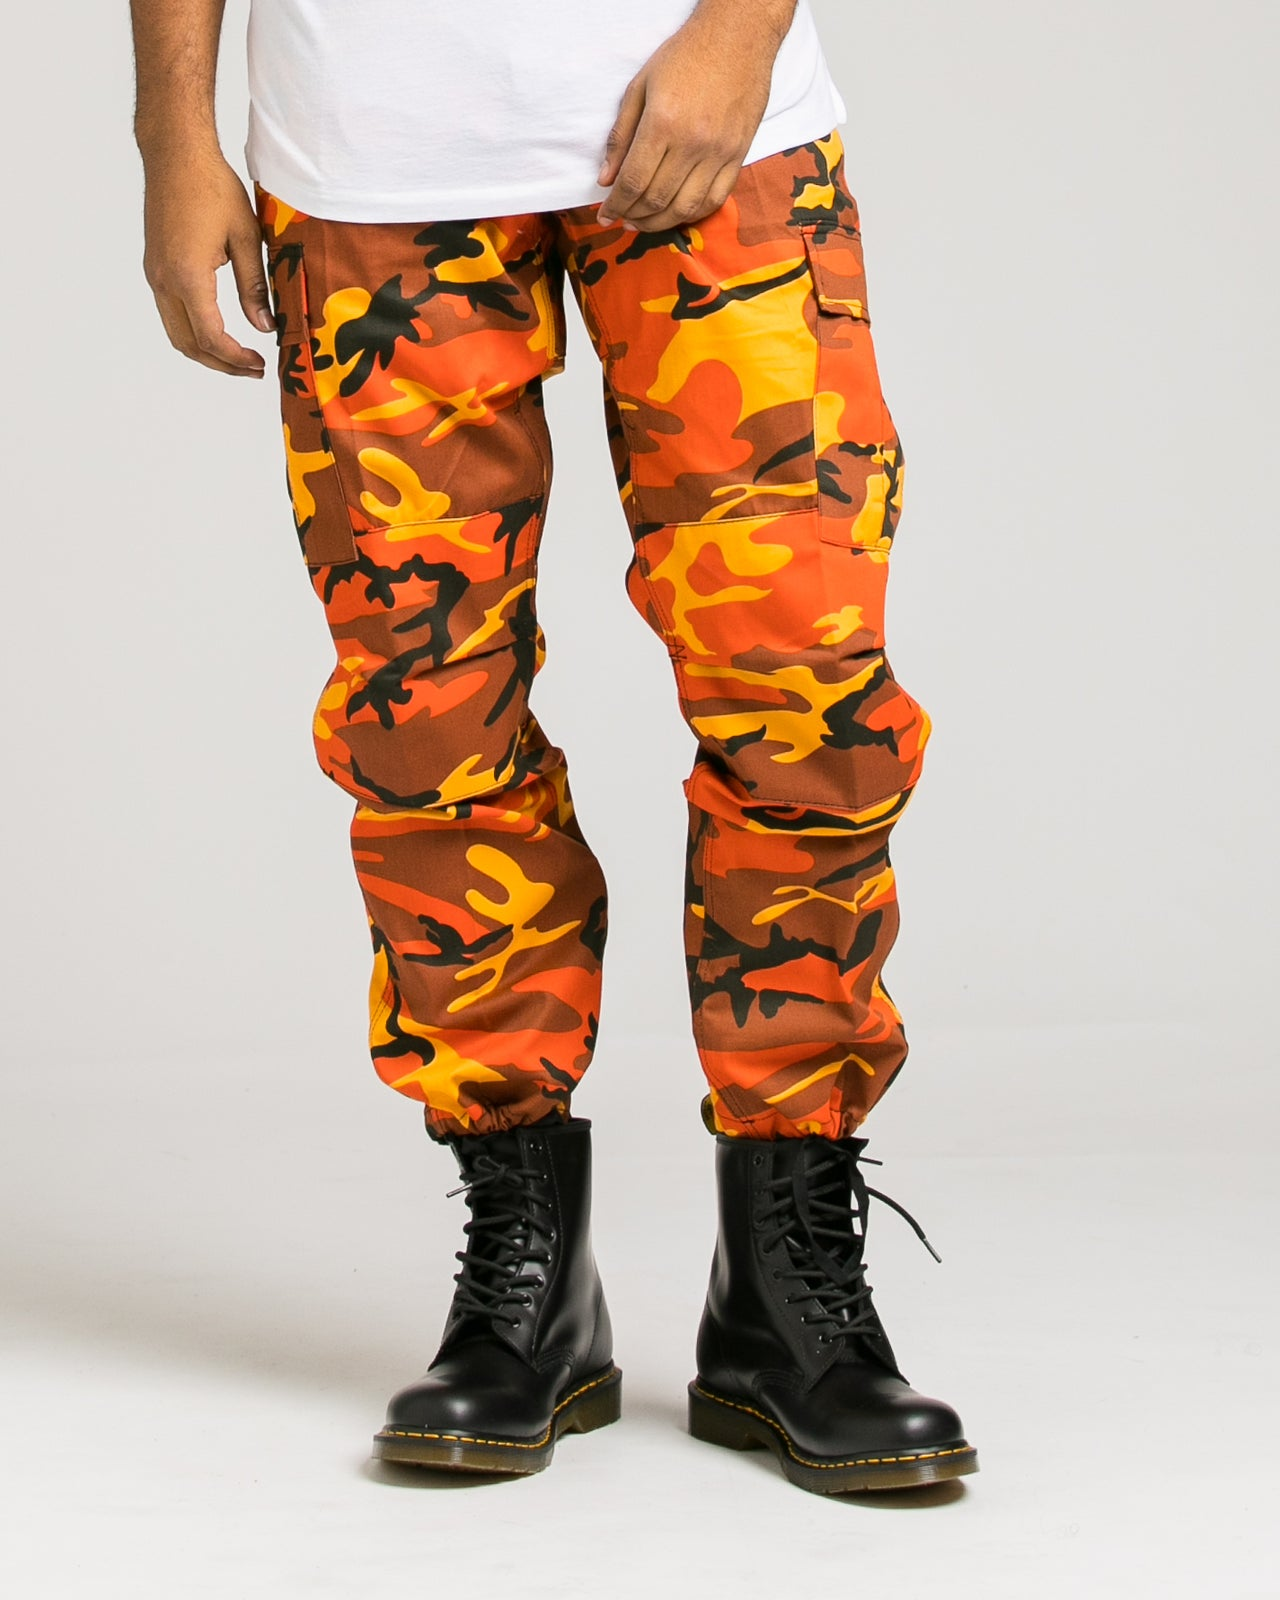 B.D.U. Pants - Color: Savage Orange Camo | Orange